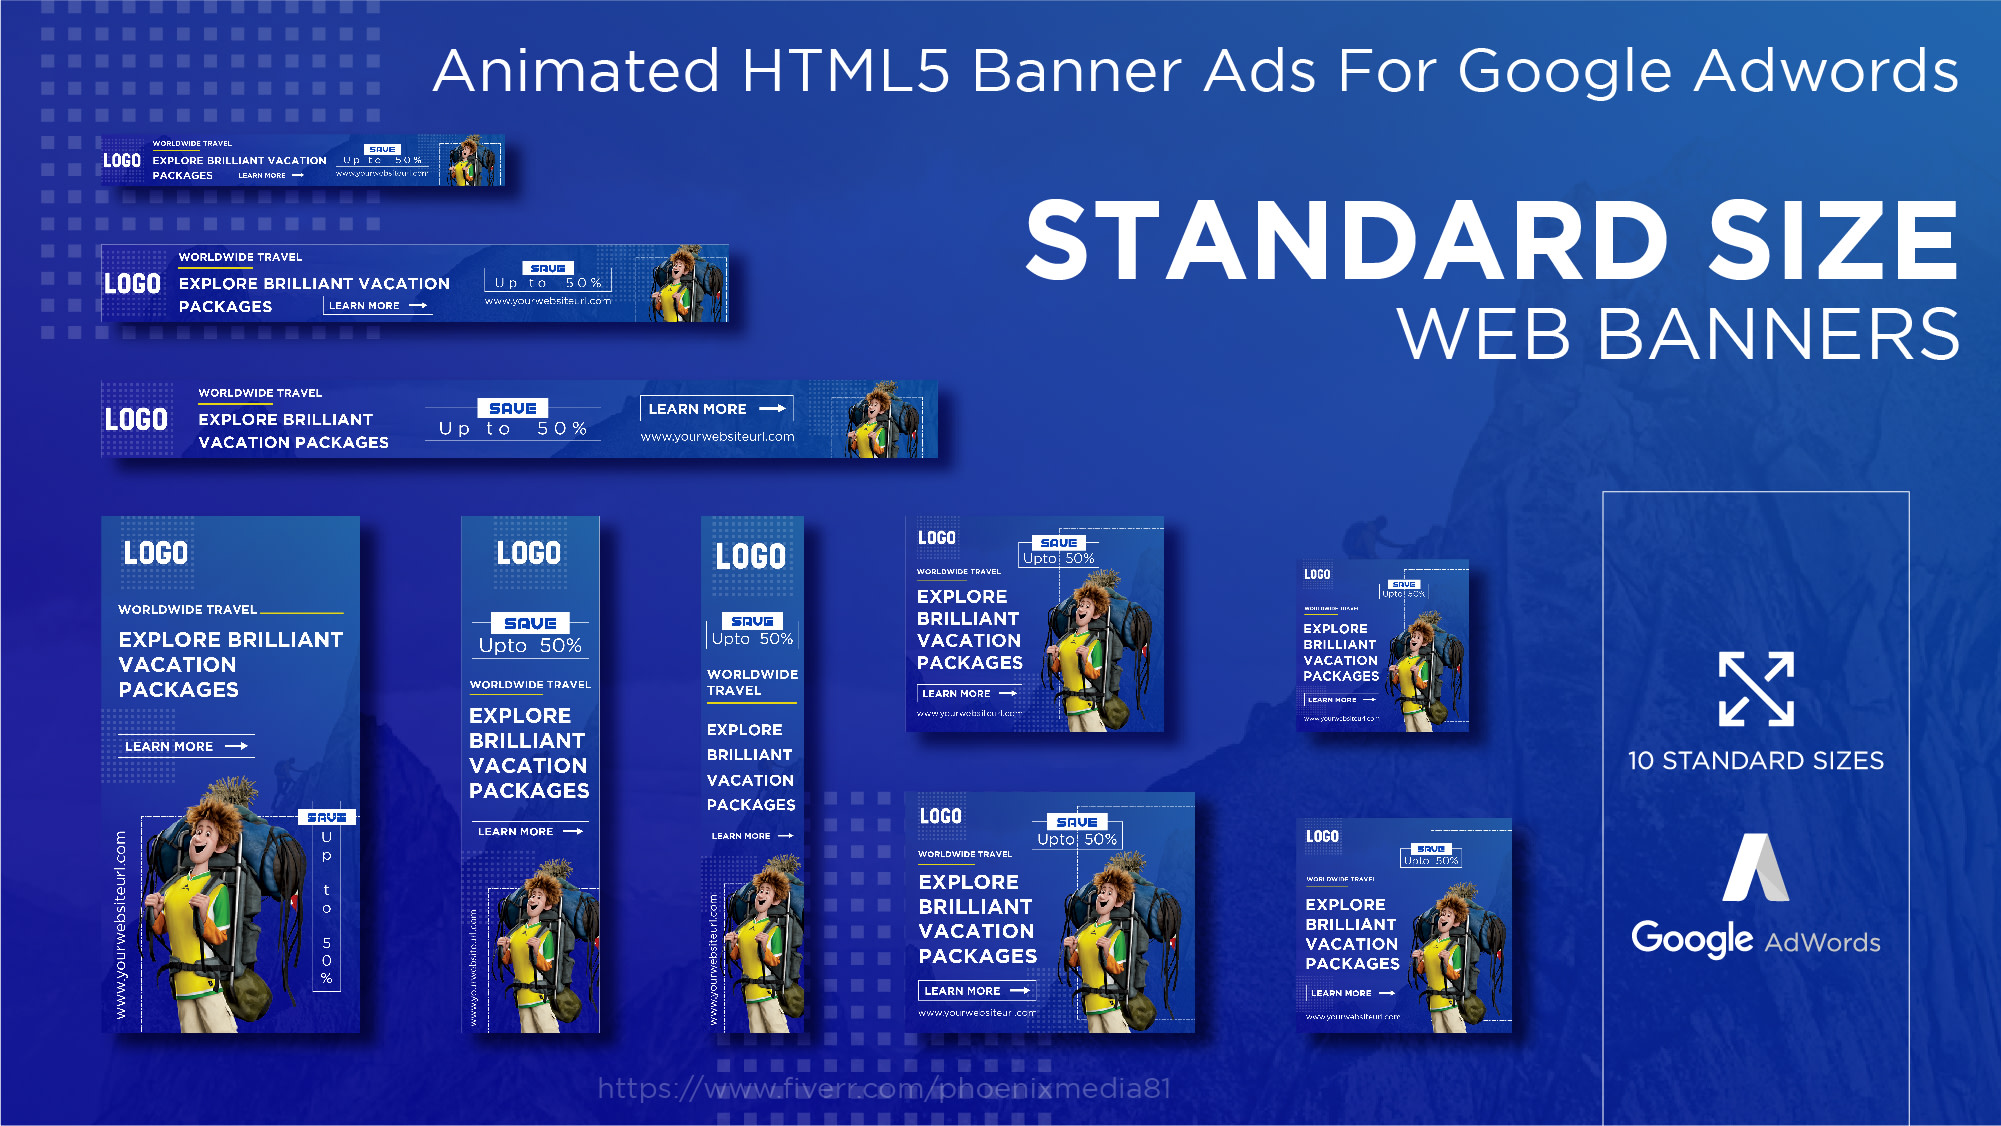 Design Google Adwords Creative Animated Html5 Banner Ads By Phoenixmedia81